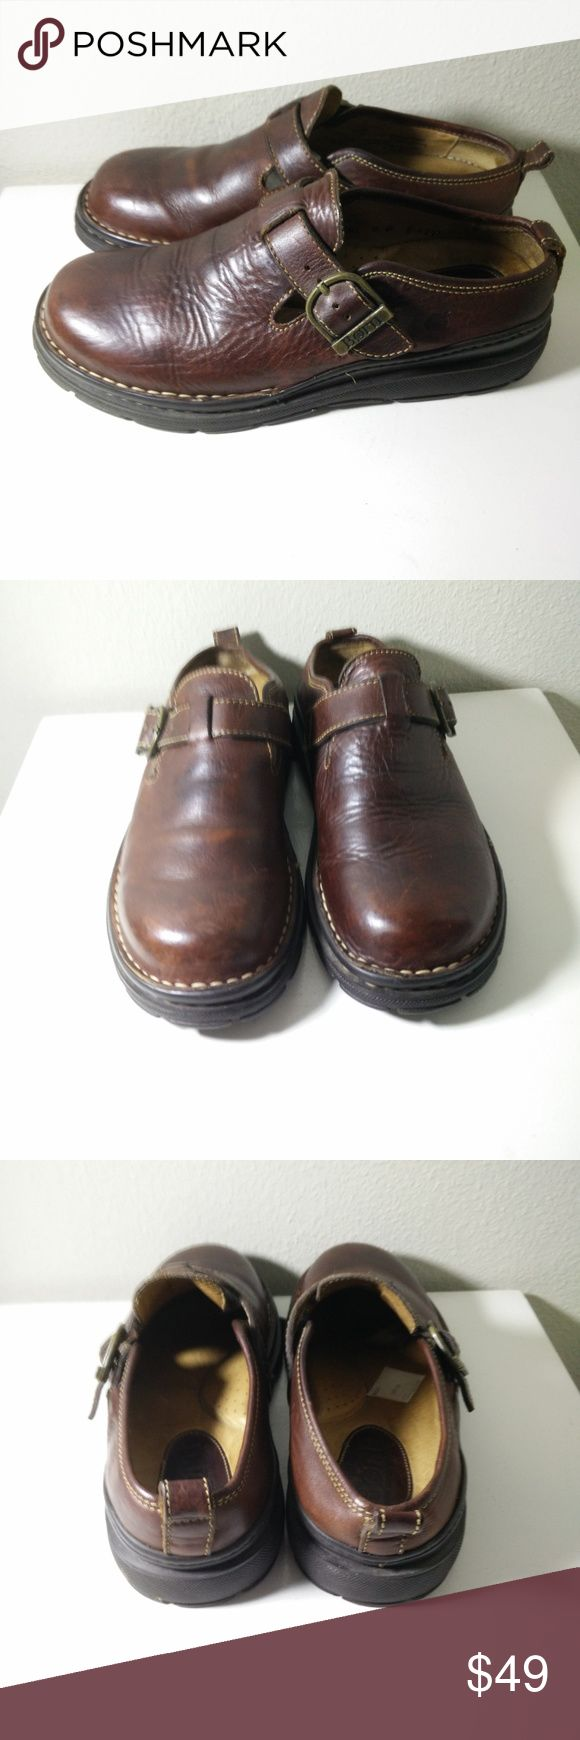 BORN Brown Leather Loafers  8M/W BORN Brown Leather Buckle Slide-on Casual Loafer Mules B-6297  US Size 8 M/W  EUR Size 41 -  Very Cool looking shoes - showing normal wear but still in GREAT overall condition - see pictures for more details... (ref#2256) Born Shoes Loafers & Slip-Ons